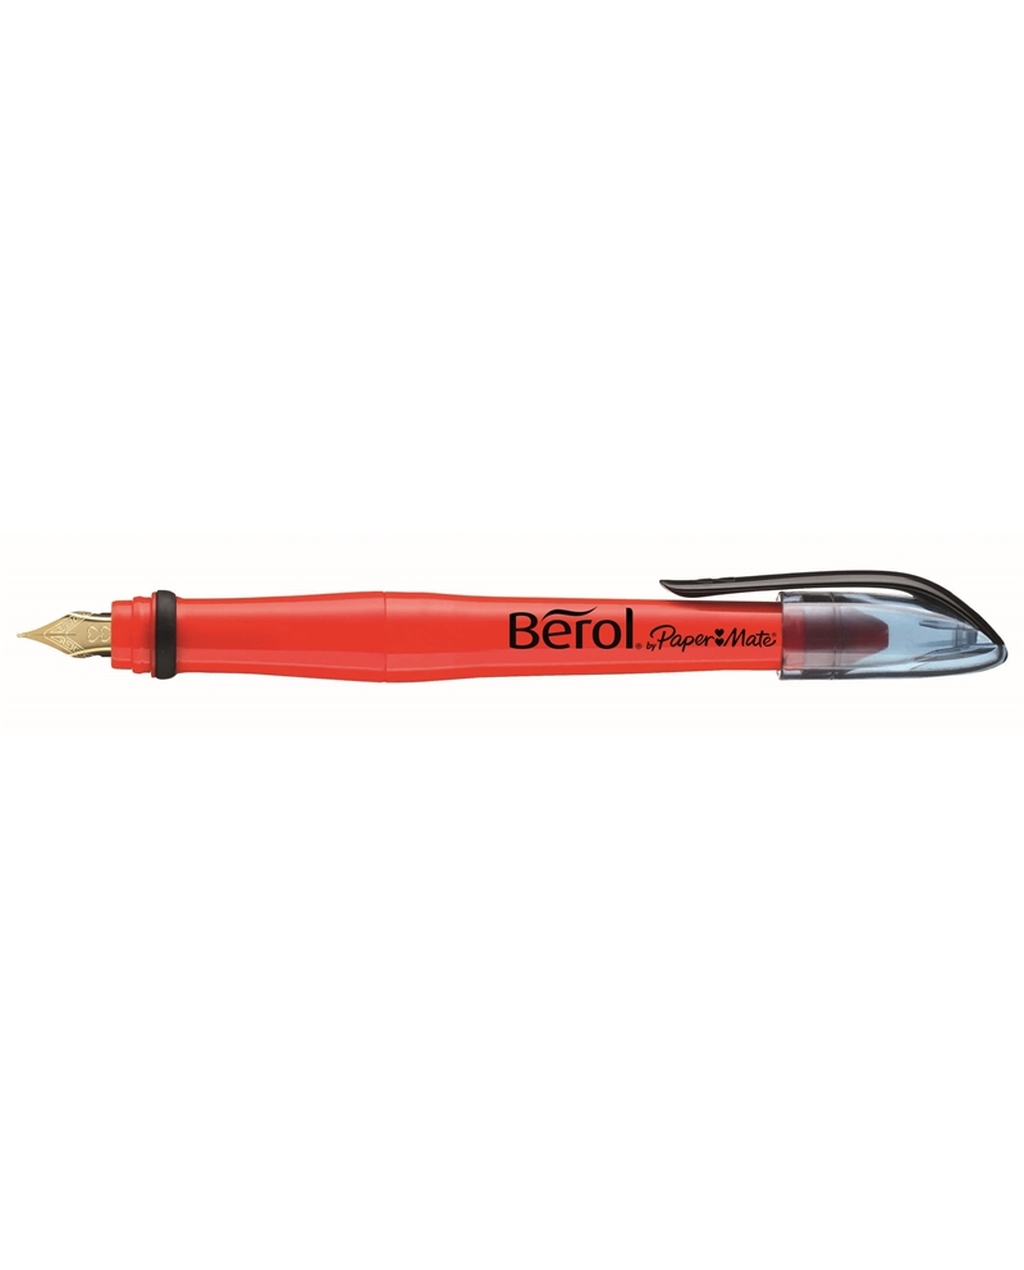 Berol Handwriting Cartridge Pens